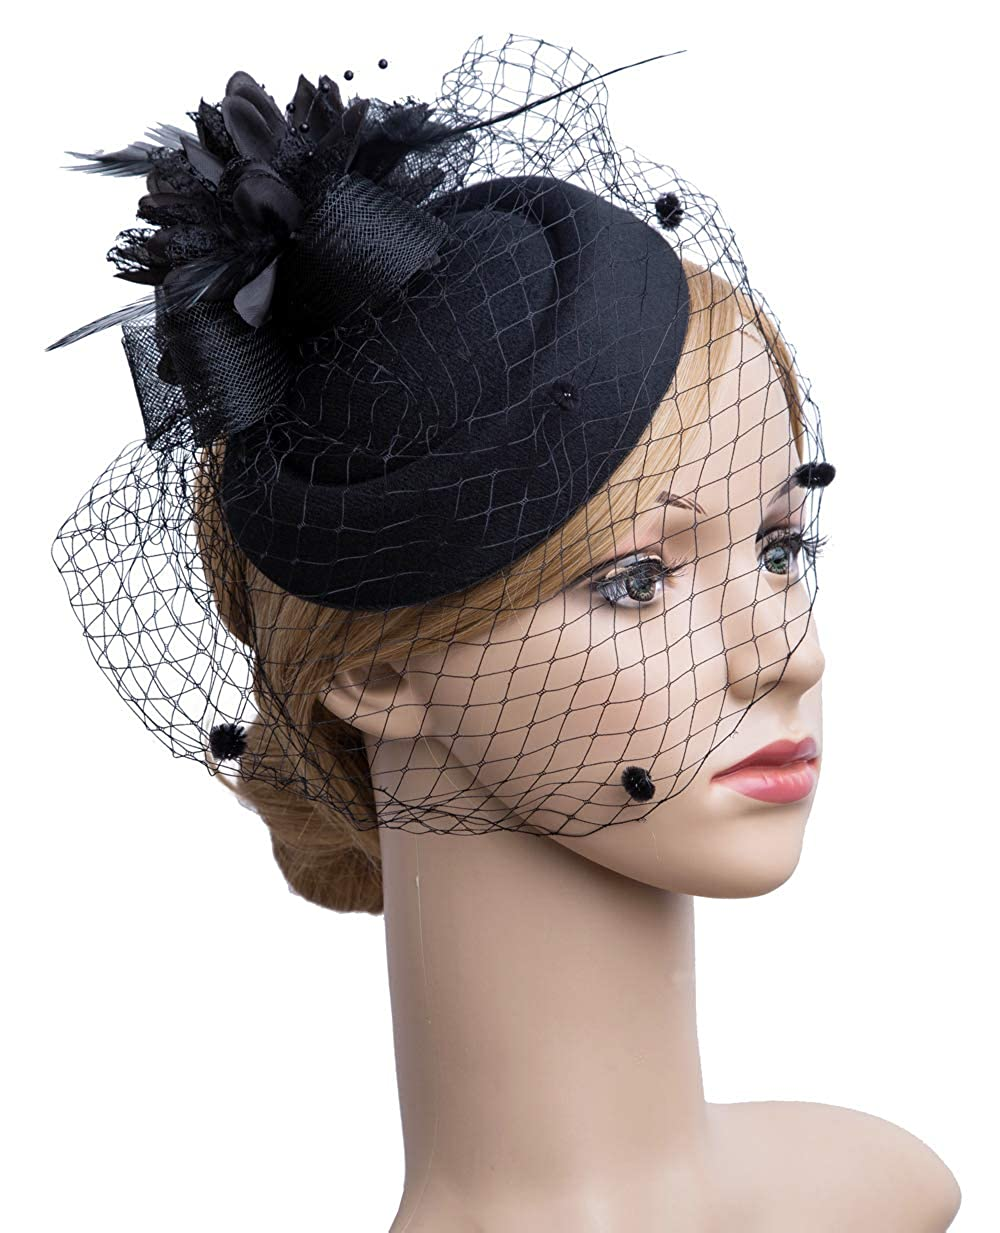 bb1208f5a0990 1950s Women s Hat Styles   History Cizoe Fascinator Hair Clip Pillbox Hat  Bowler Feather Flower Veil